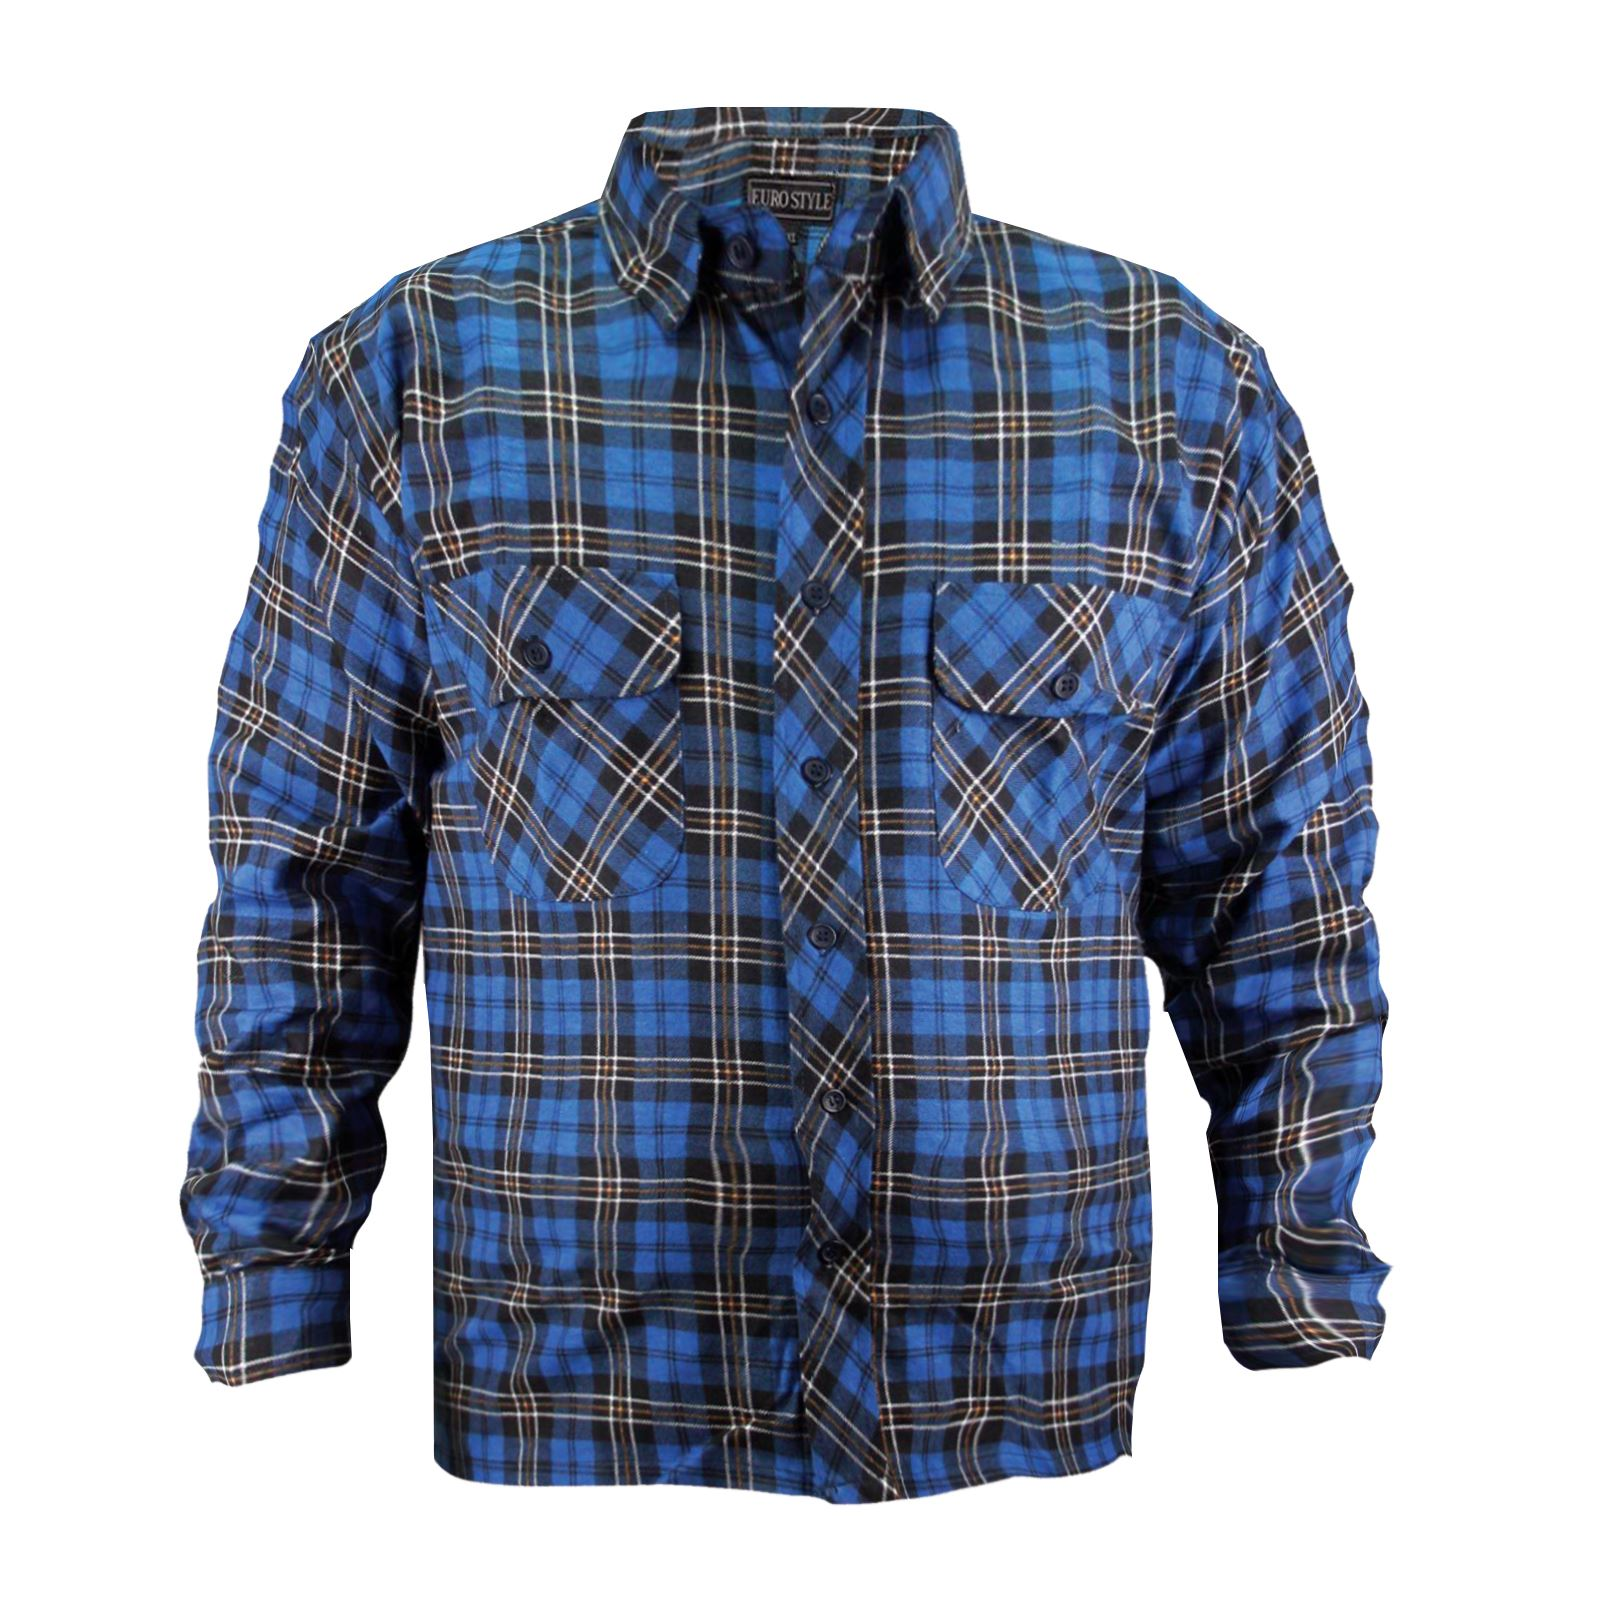 New-Mens-Ex-Store-Work-Shirt-Lumberjack-Long-Sleeve-Check-Brushed-Flannel-Cotton thumbnail 5